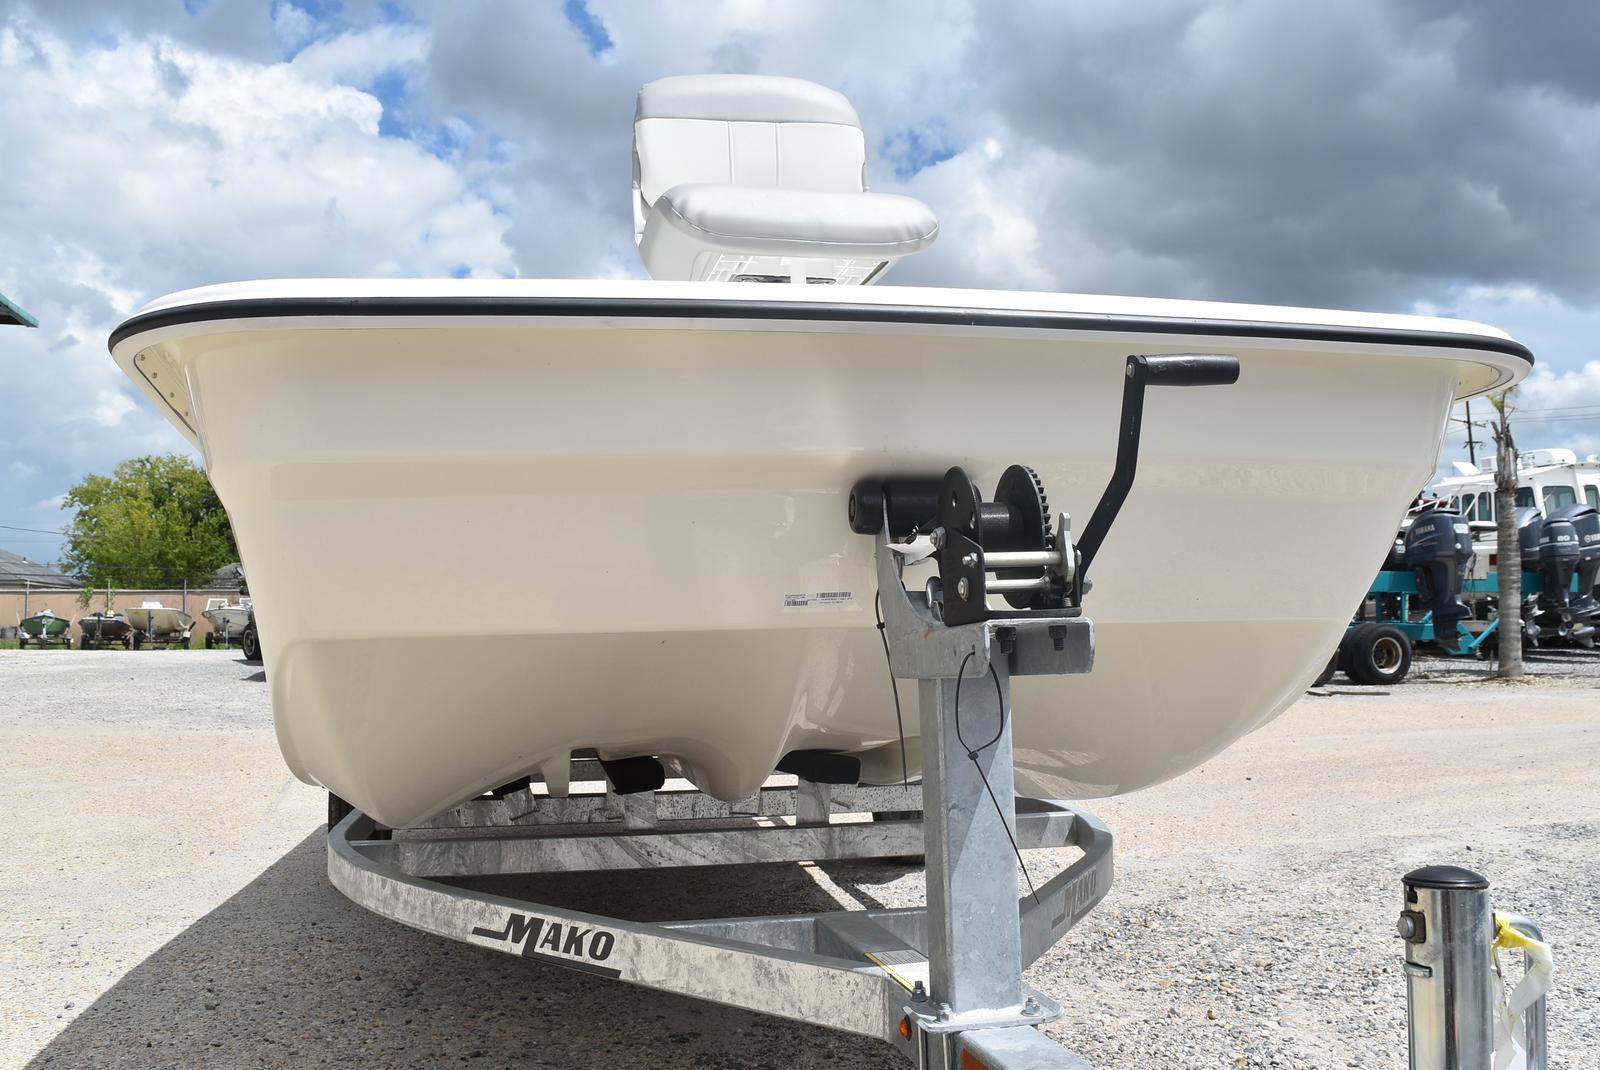 2020 Mako boat for sale, model of the boat is Pro Skiff 17, 75 ELPT & Image # 350 of 702